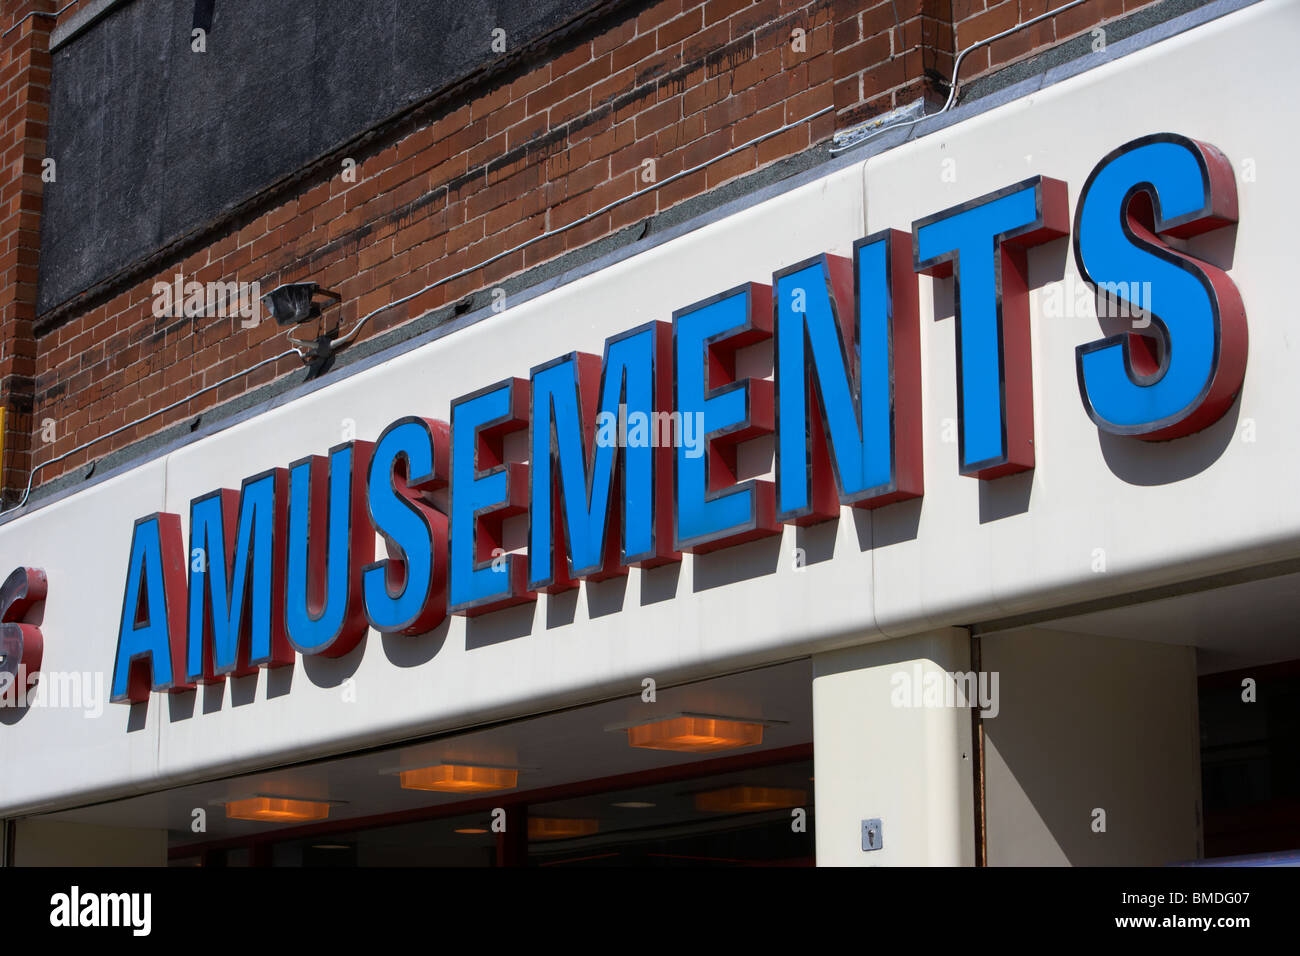 amusements sign over an amusement arcade in southport merseyside england uk - Stock Image